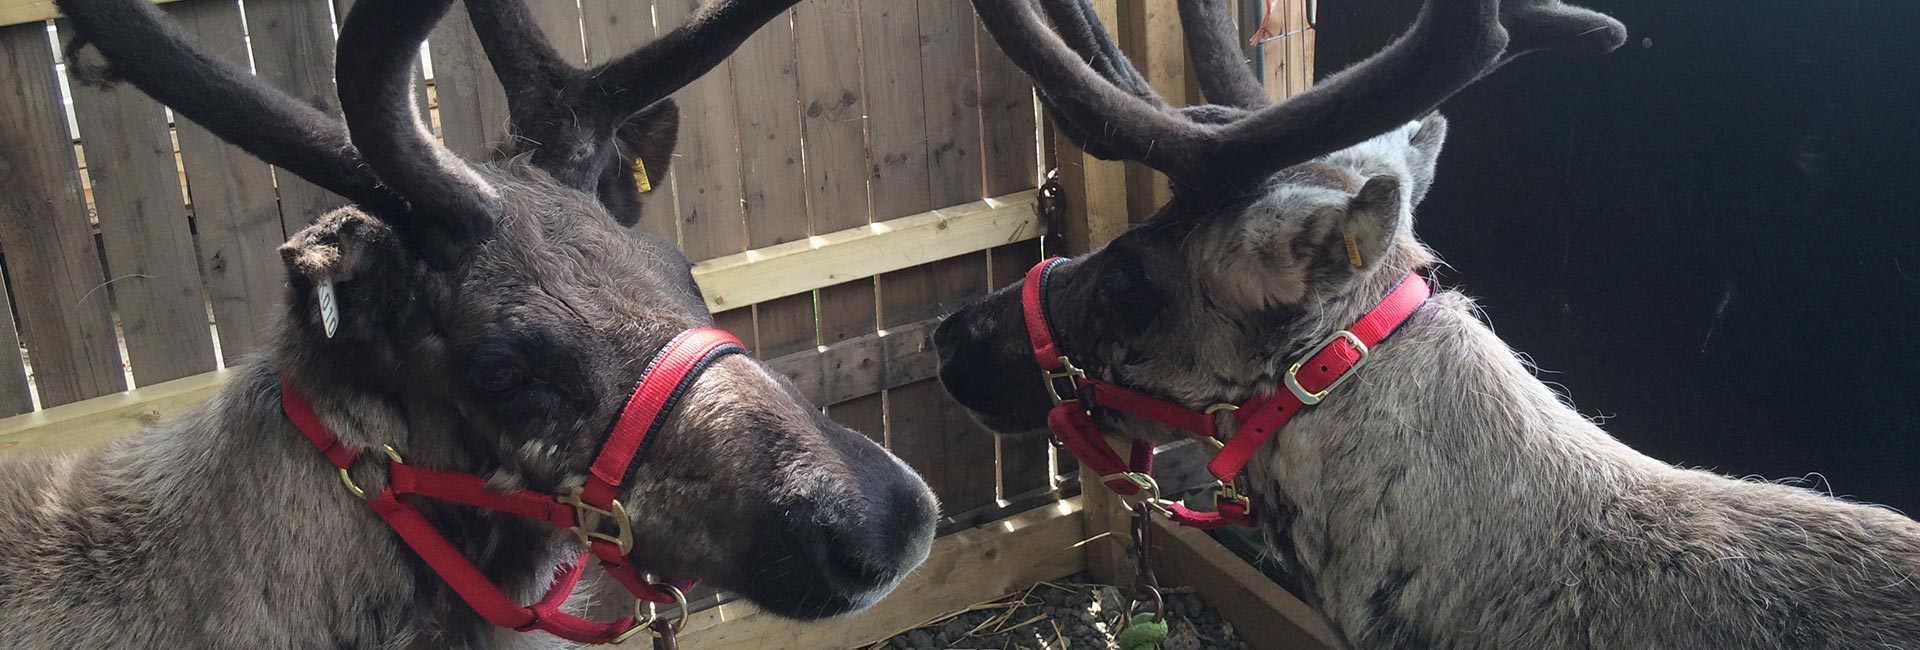 reindeers with head collars